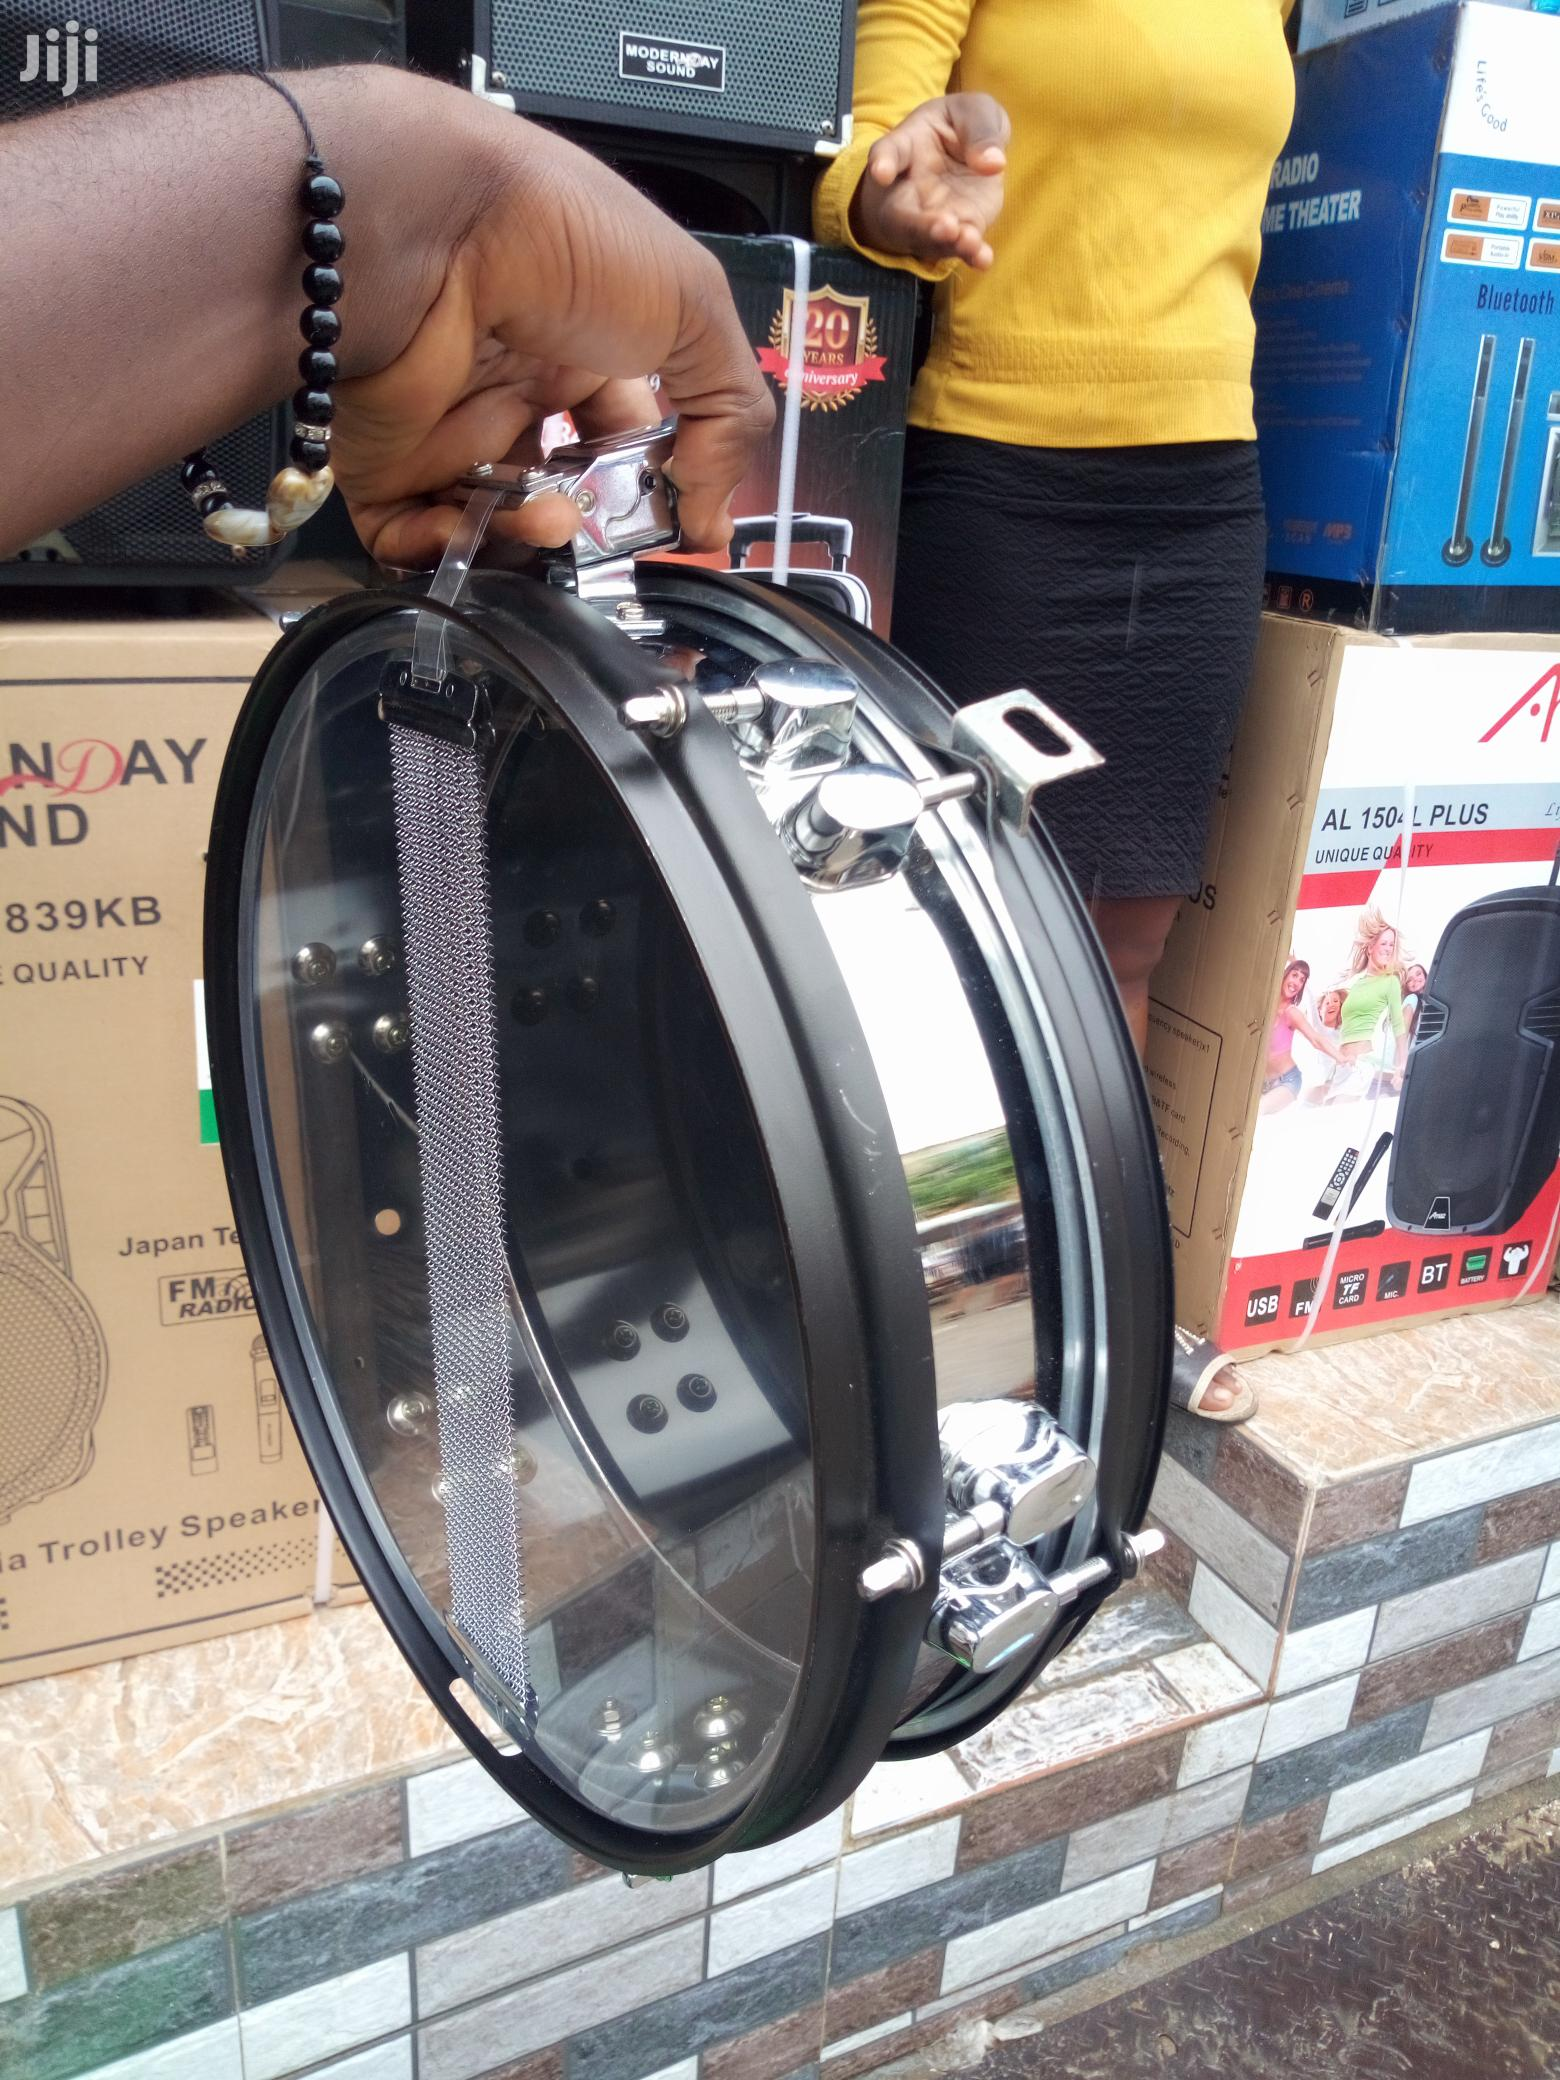 Premier Snare Drum   Musical Instruments & Gear for sale in Ojo, Lagos State, Nigeria